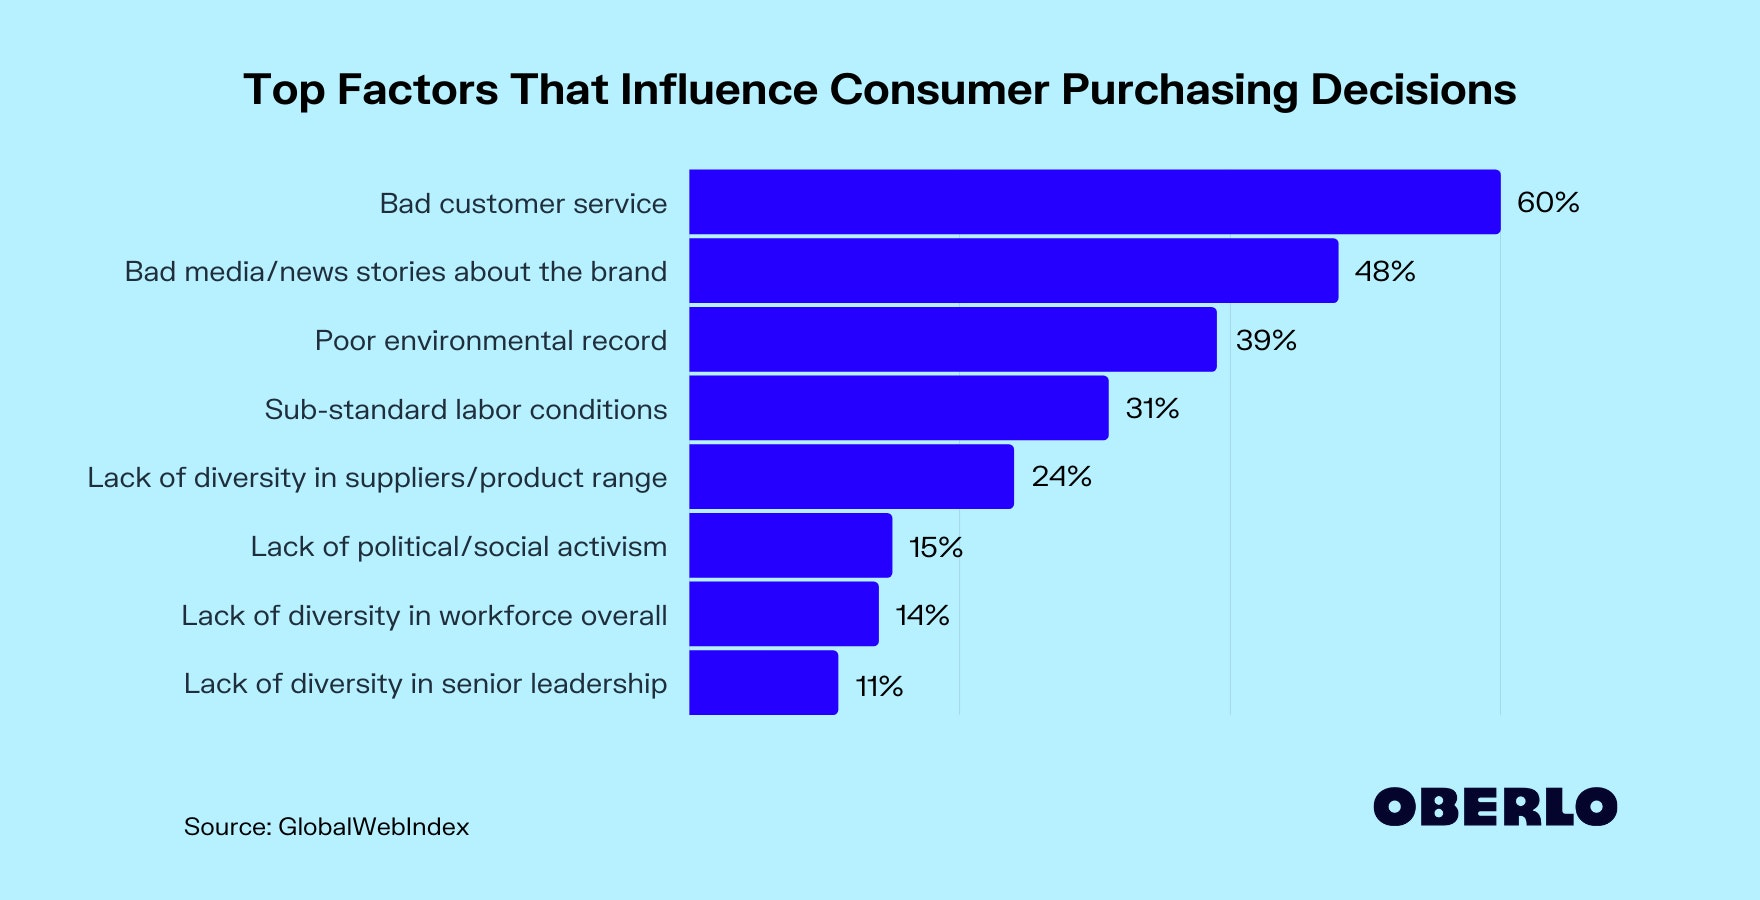 Top Factors That Influence Consumer Purchasing Decisions